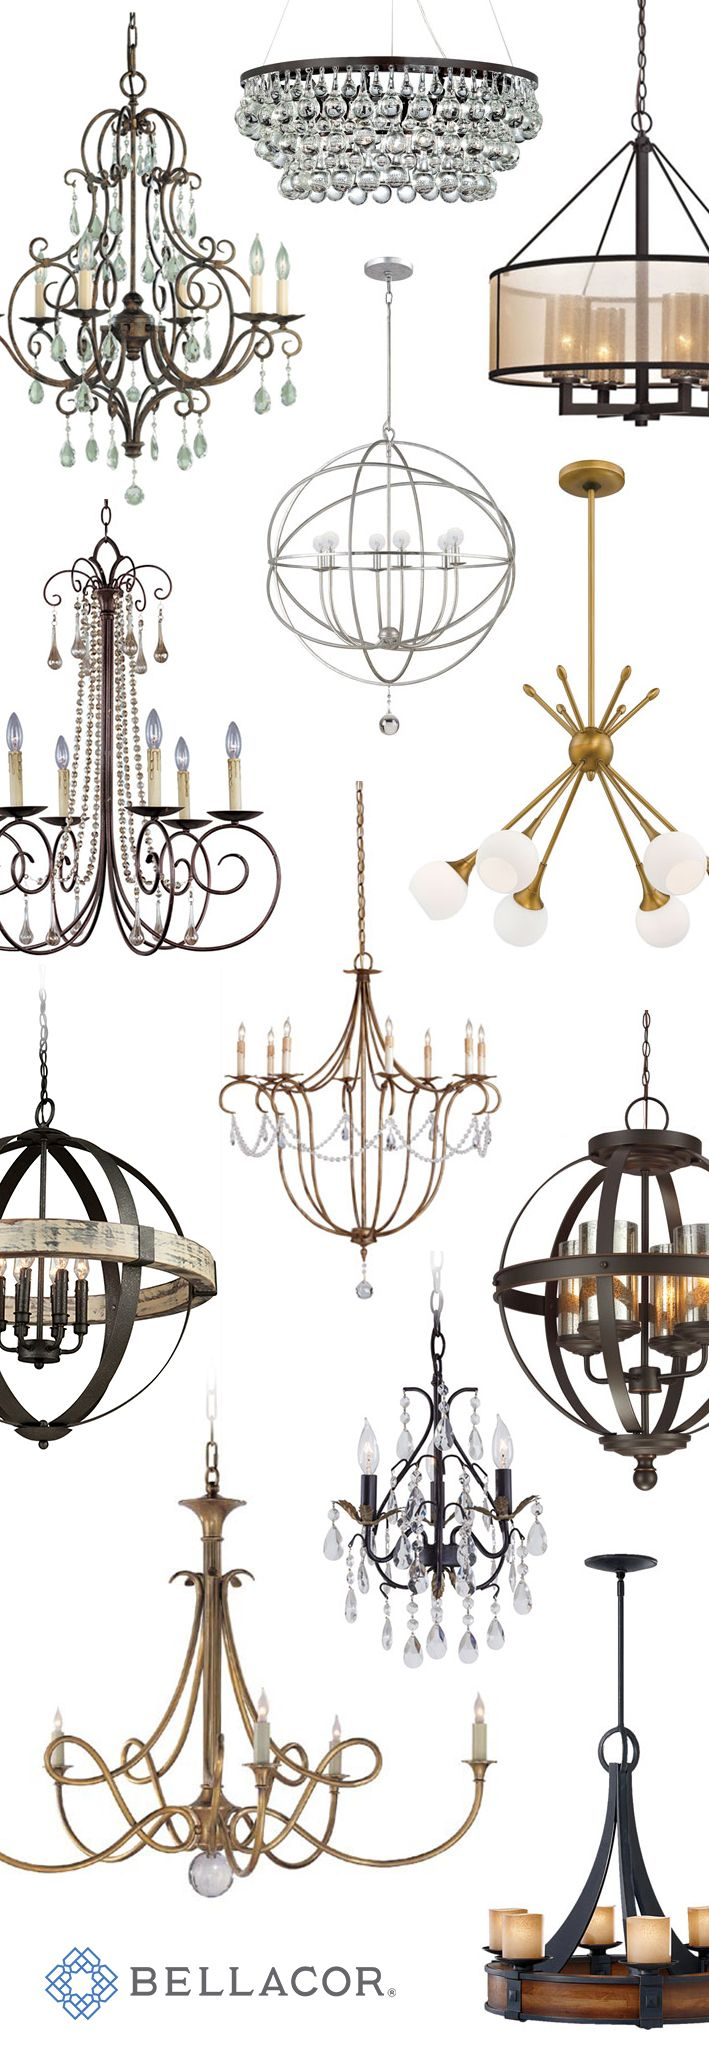 A chandelier from Bellacor can make a great focal point in your space. At up to 70% off, you can bring one of these pieces home for the lowest prices of the season. Free shipping on orders over $75 and a price match guarantee make sure these deals shine even brighter, along with your new chandelier. http://www.bellacor.com/chandeliers.htm?partid=social_pinterestad_holiday_chandeliers